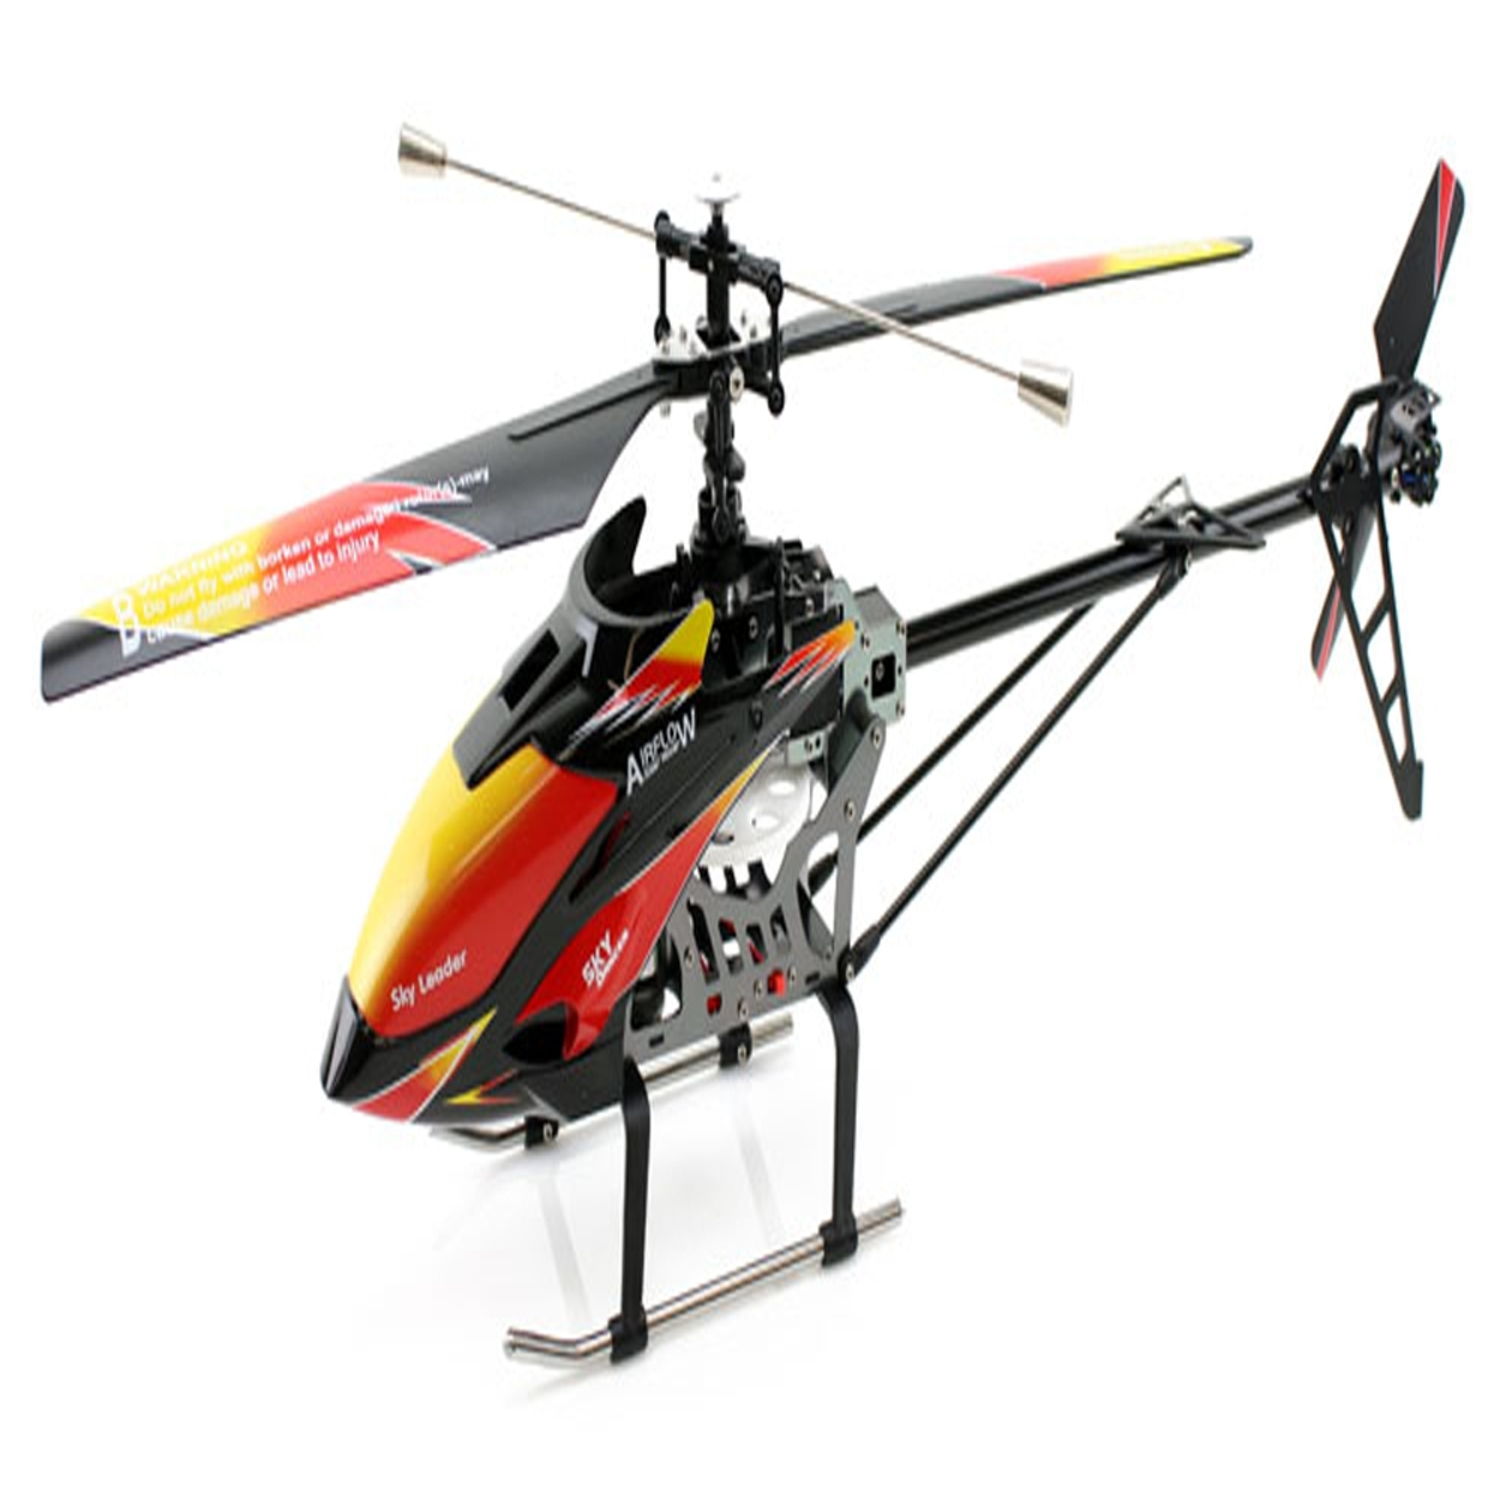 "WL V913 27"" Large 4 Channel 4CH RC Helicopter 2.4GHz (Gift Idea)"